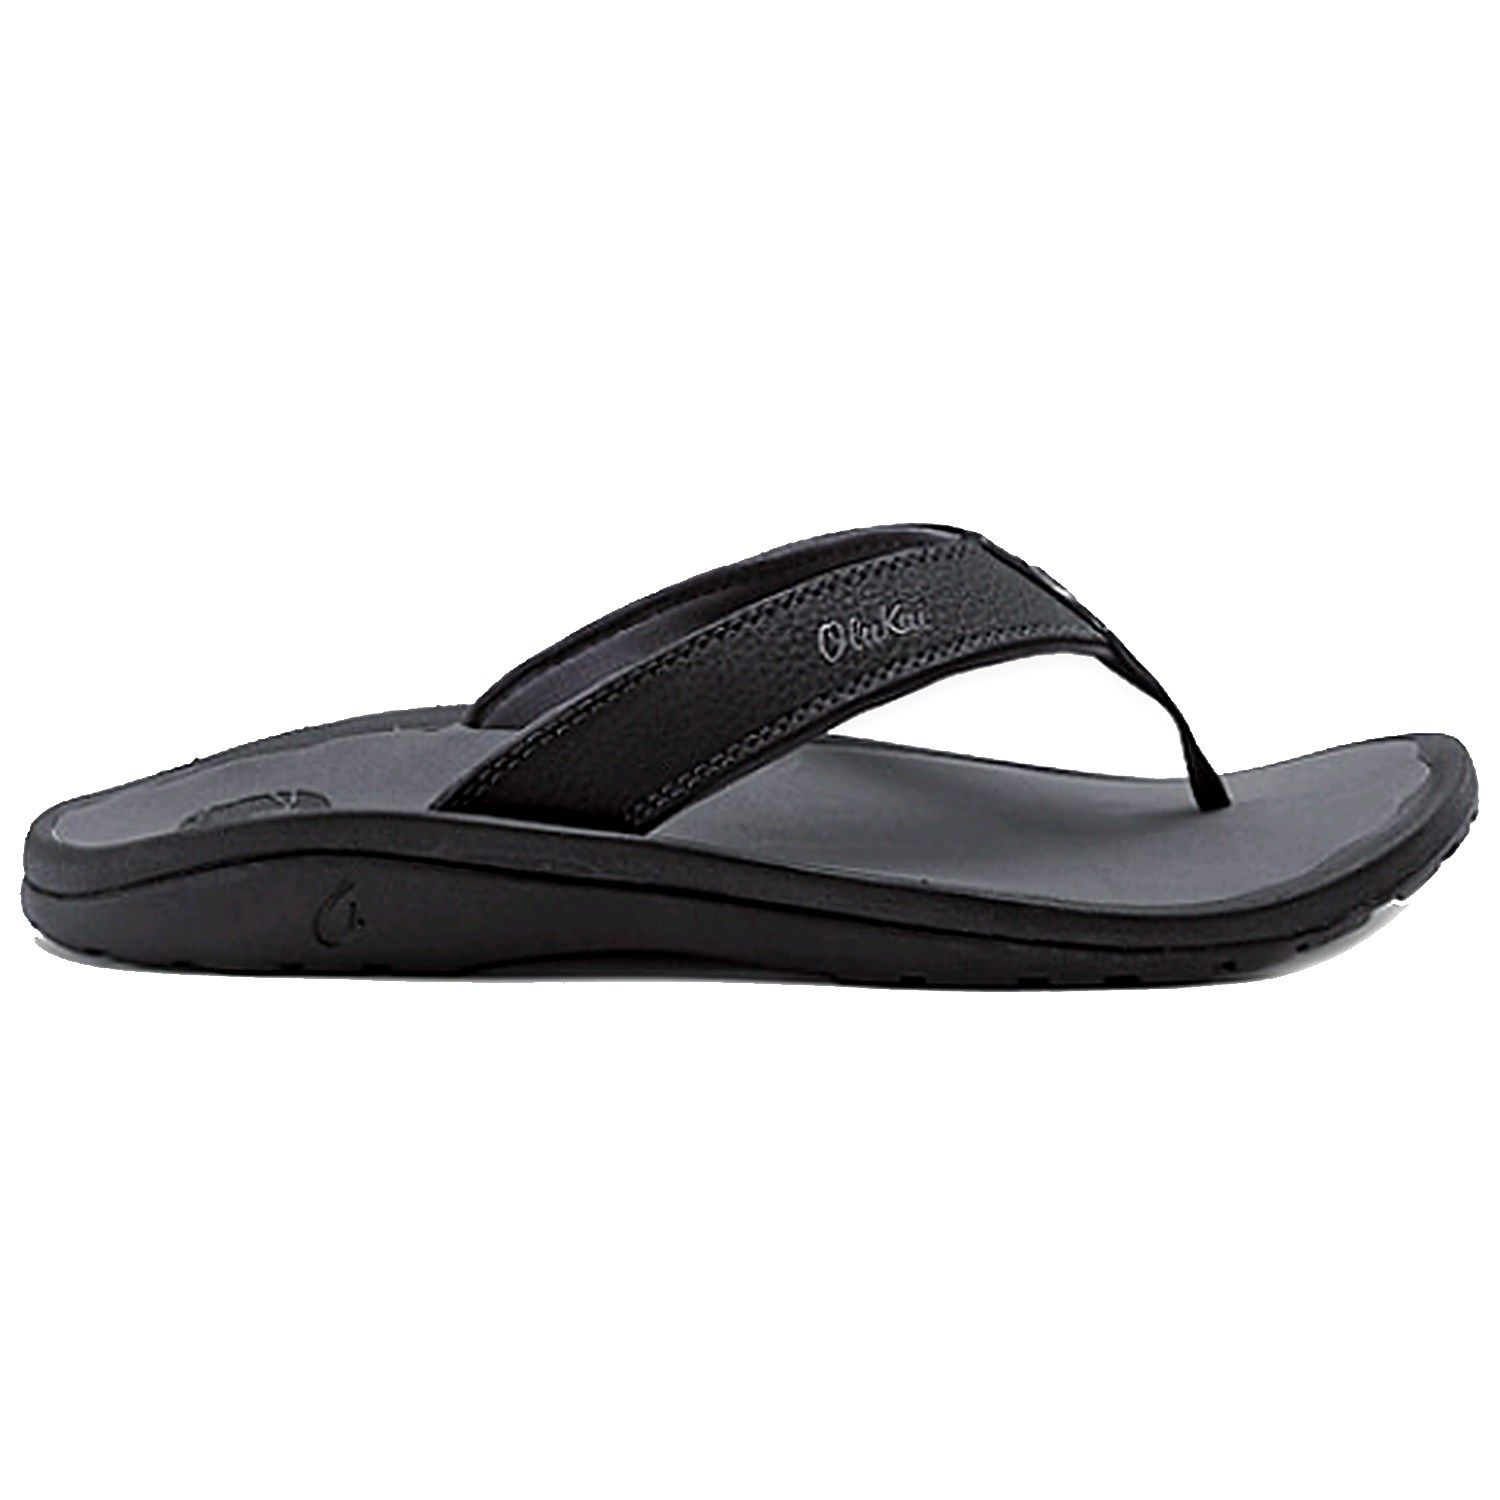 Olukai Ohana Sandals Most Comfortable Sandals Flip Flop Shoes